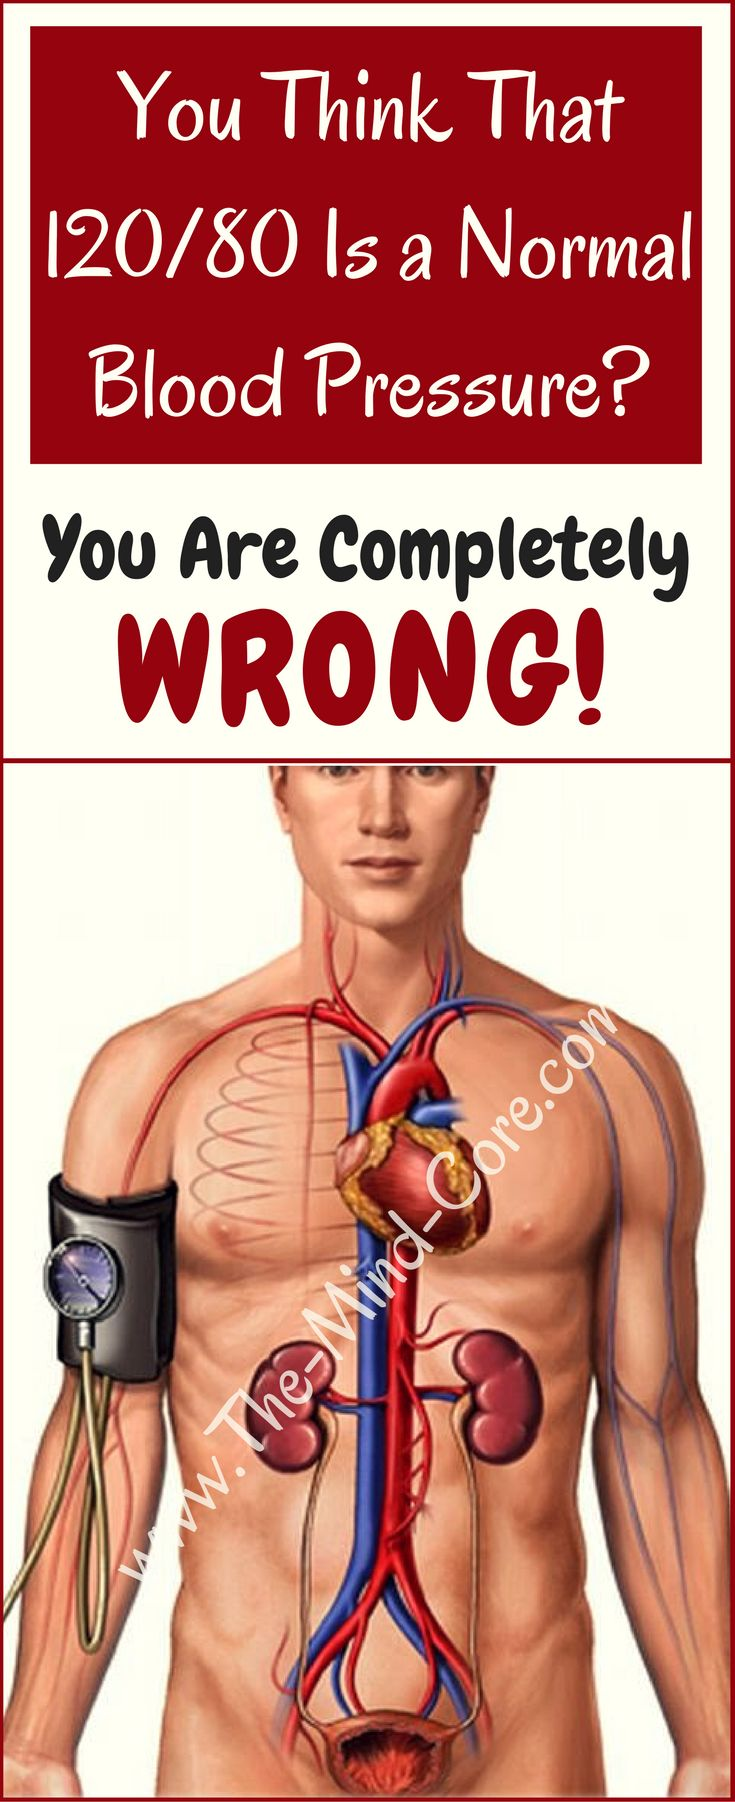 ATTENTION: You Think That 120/80 Is A Normal Blood Pressure?! Here's the Answer…